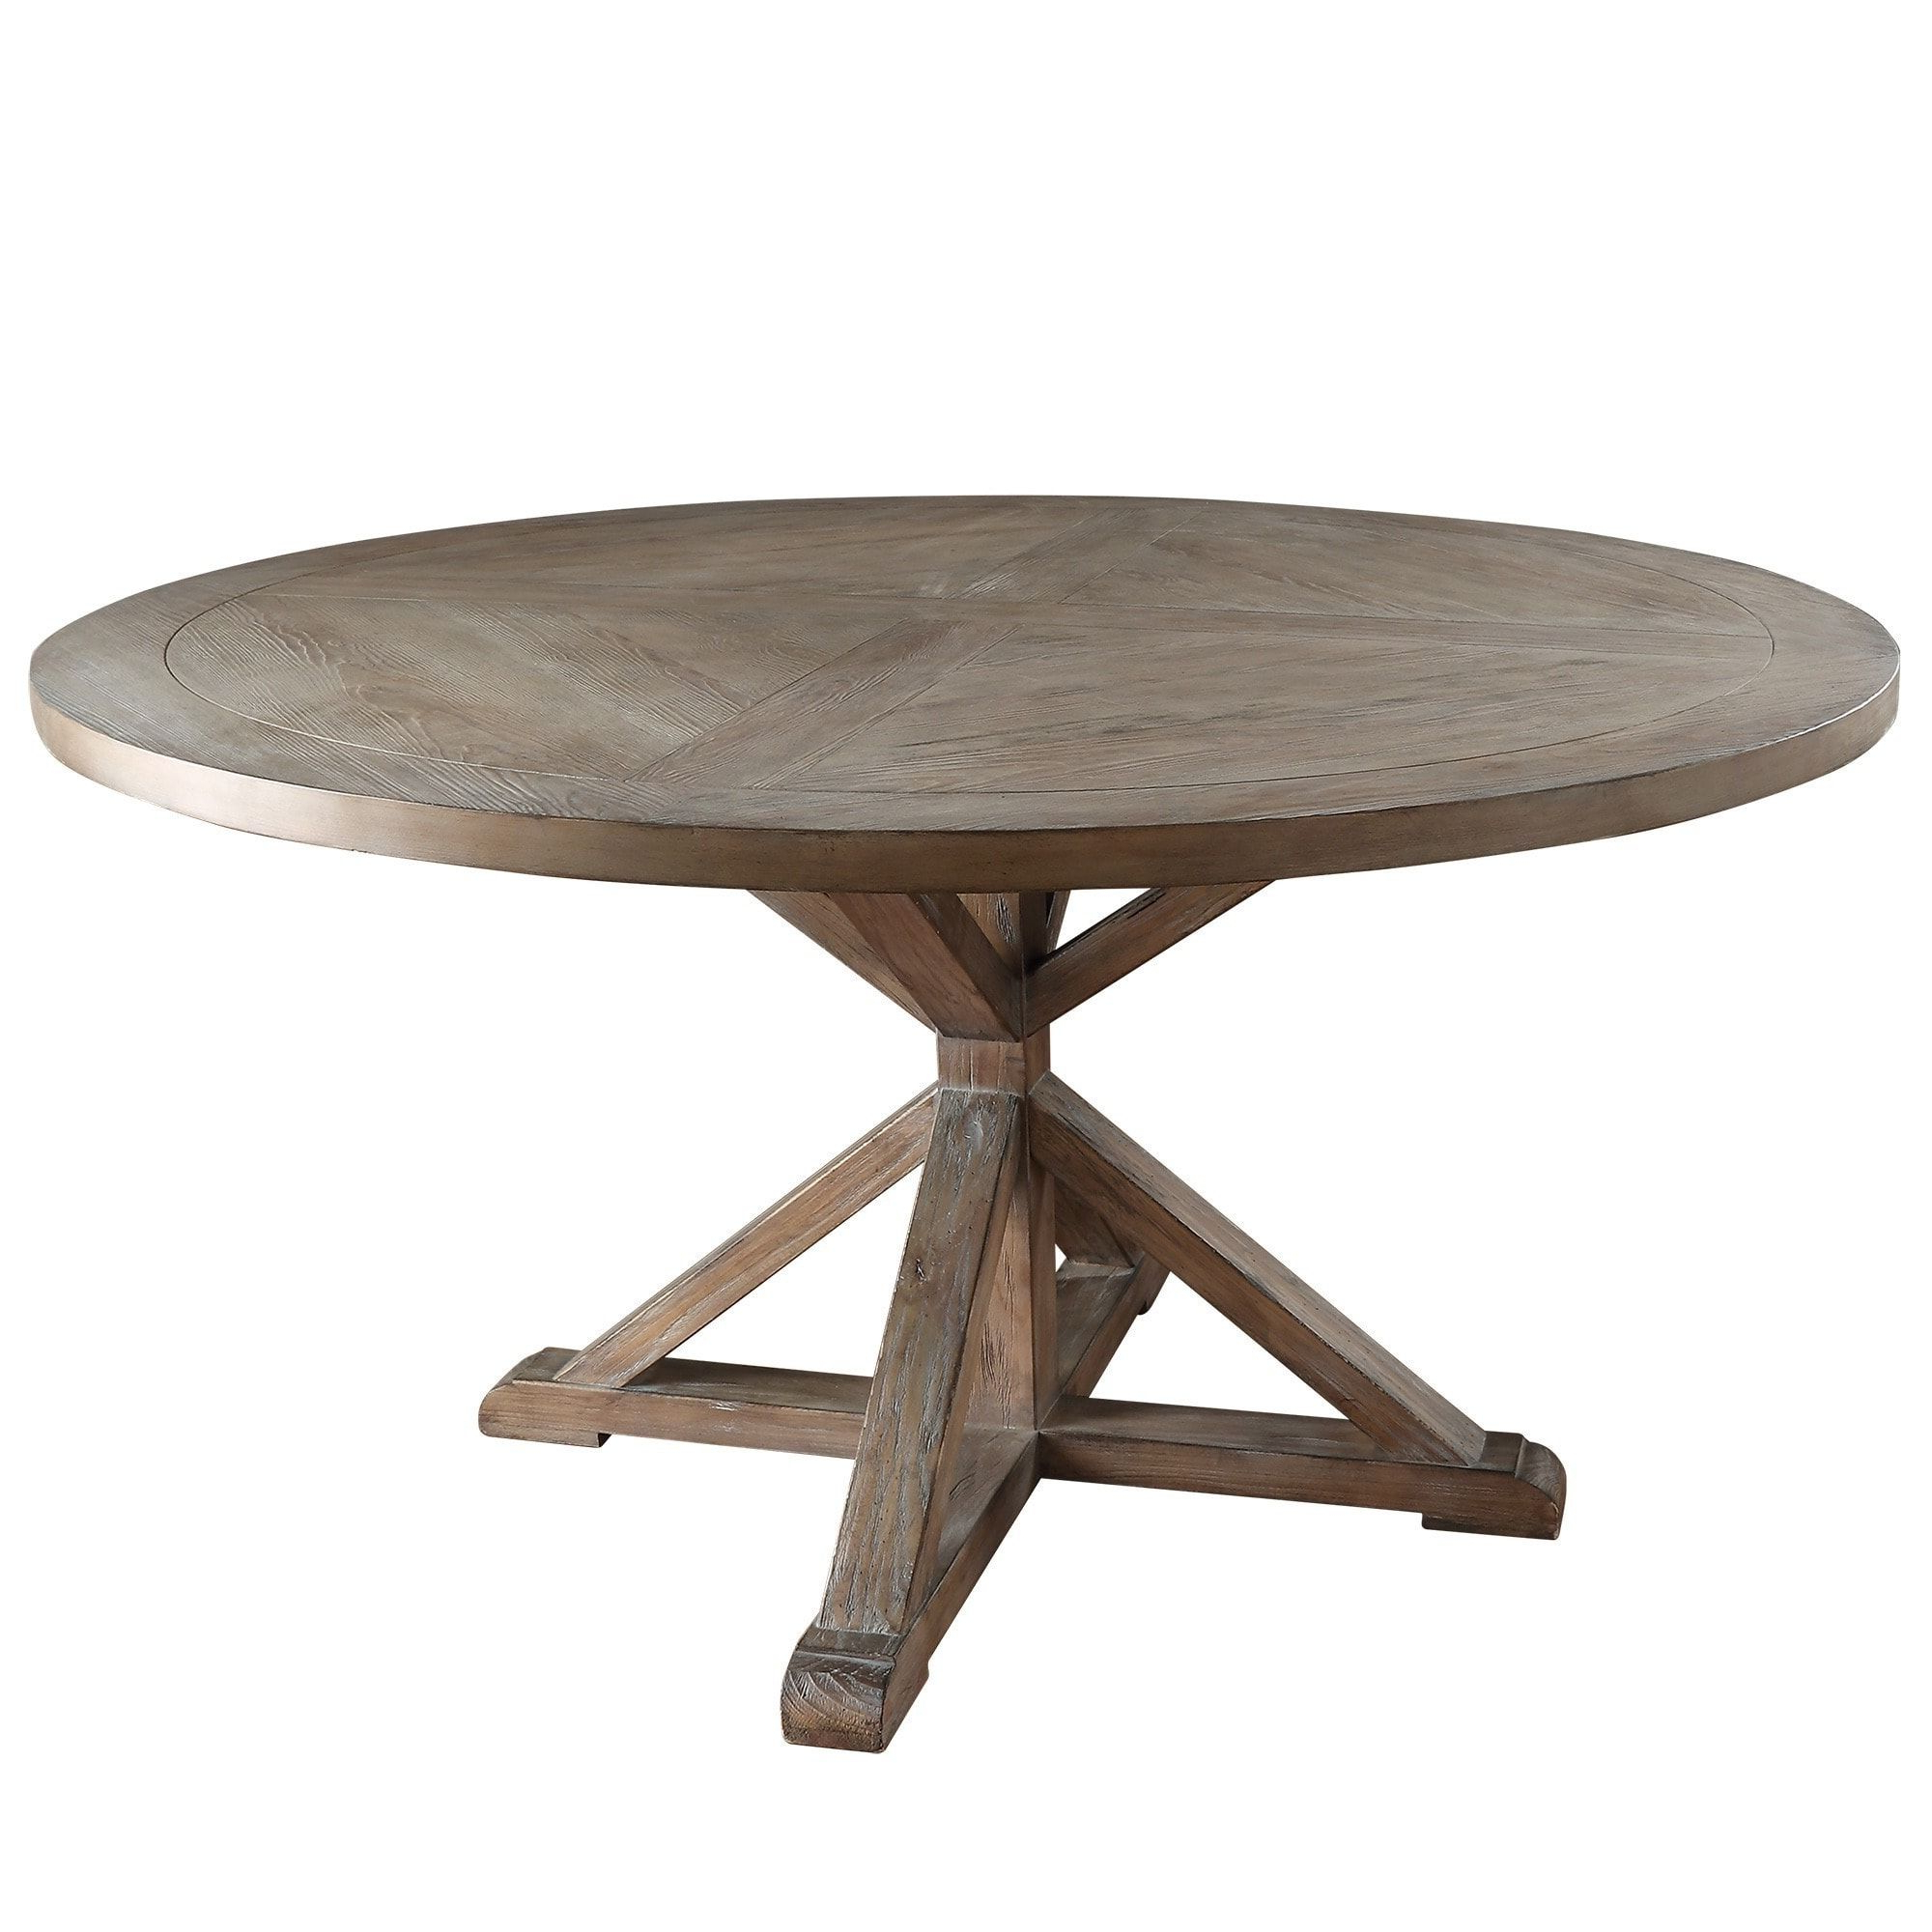 Benchwright Round Pedestal Dining Tables Throughout Latest Benchwright Rustic X Base Round Pine Wood Dining Table (View 24 of 25)